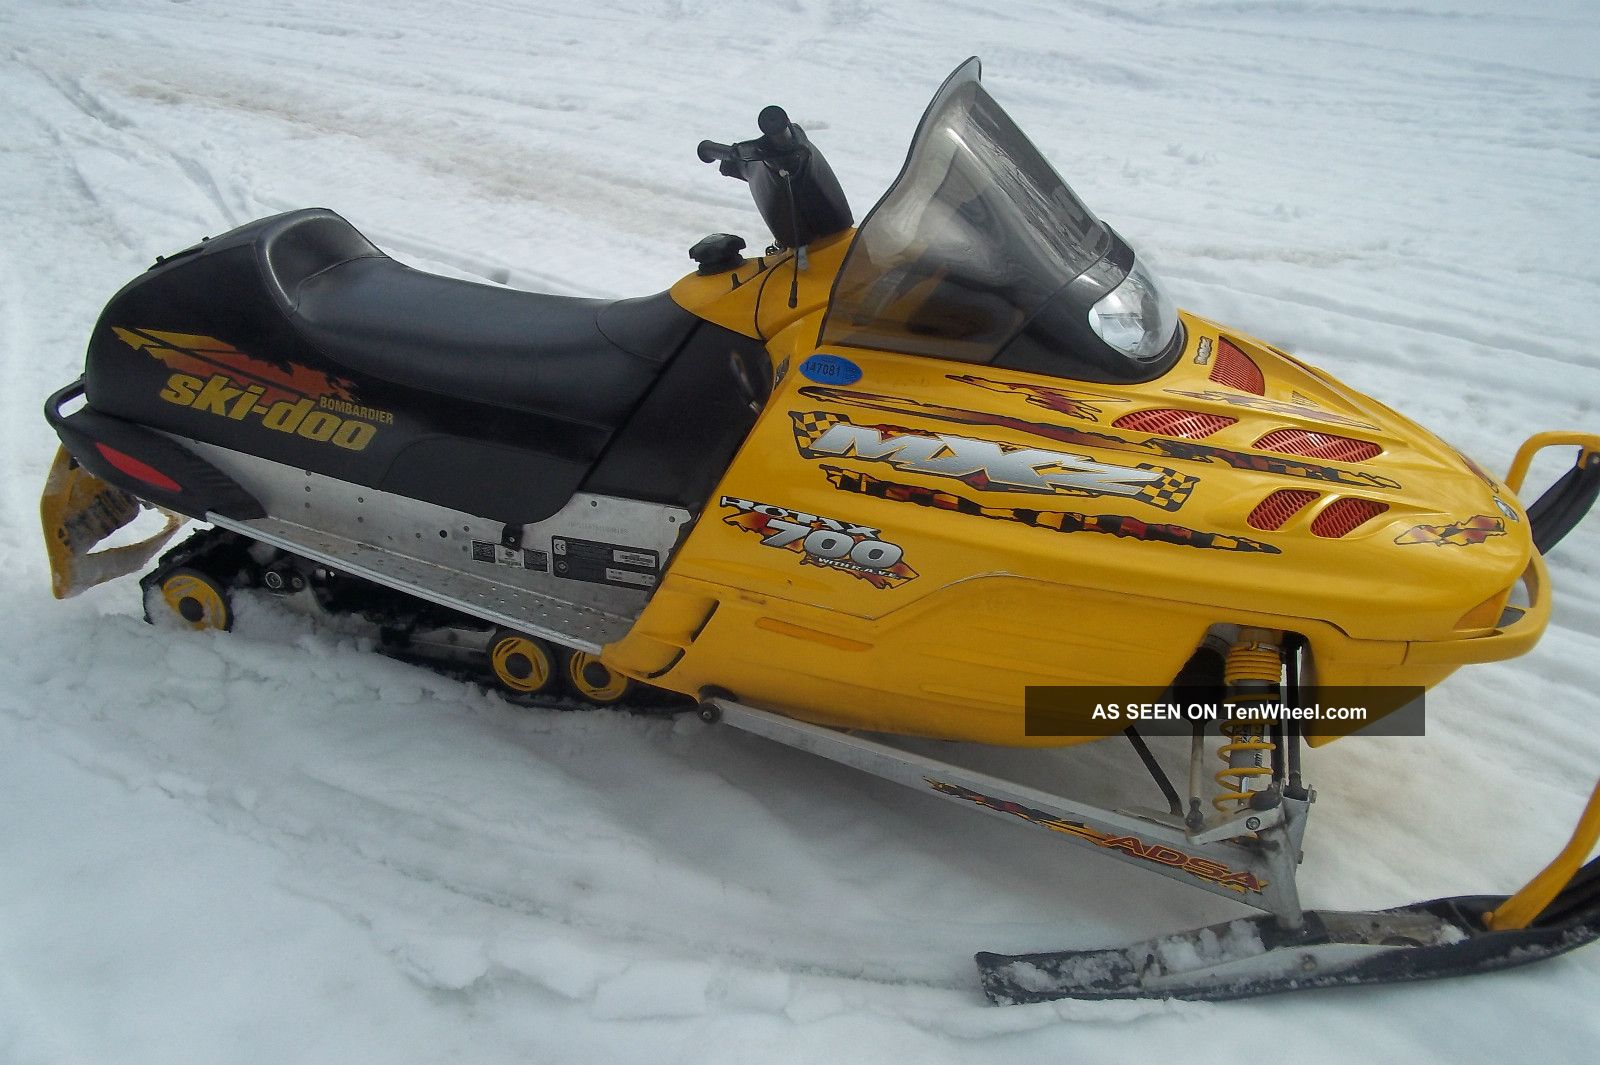 Ski Doo 700 Wiring Diagram Trusted Diagrams 1998 670 Skandic Grand Touring